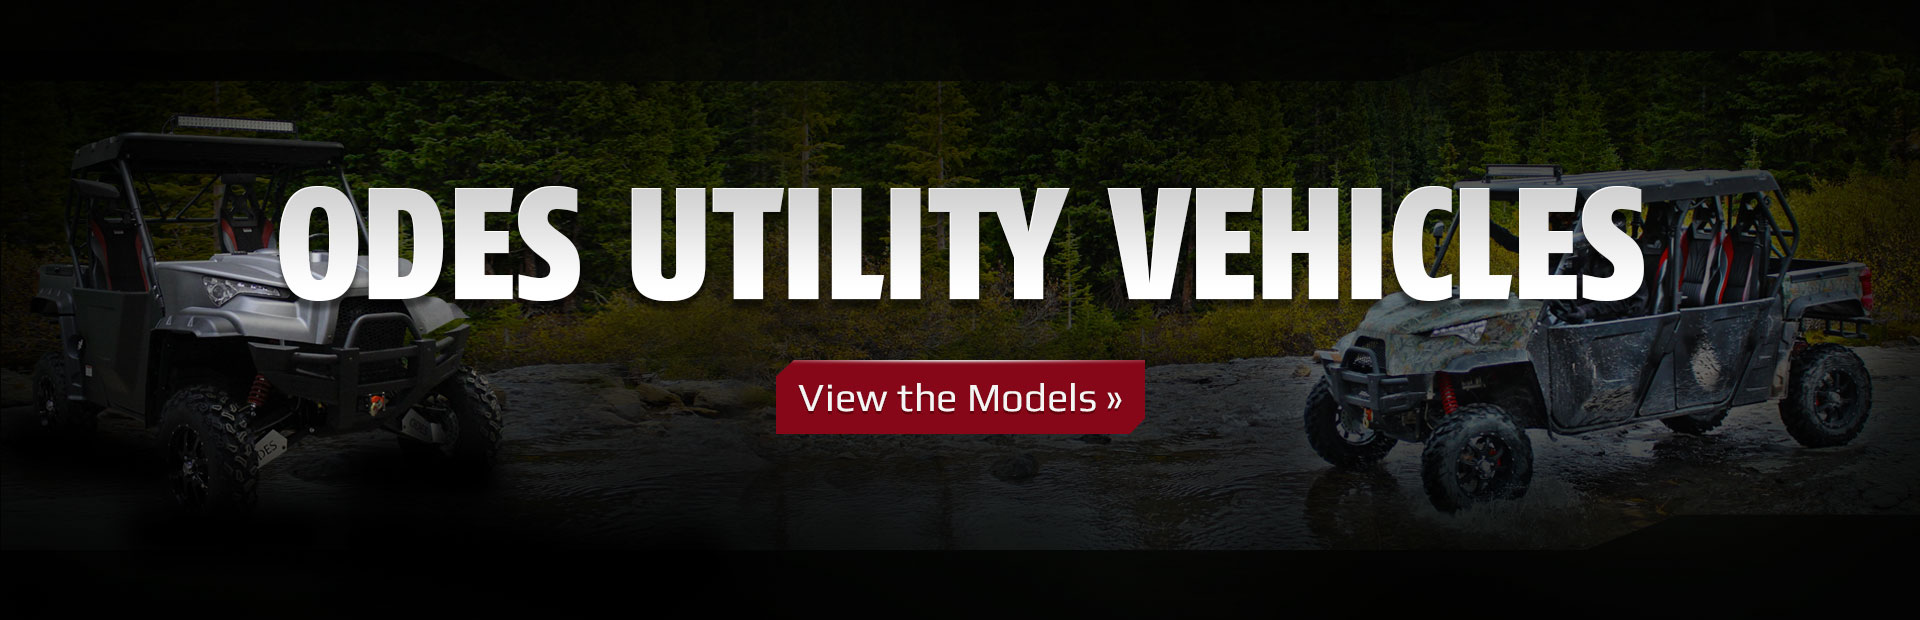 ODES Utility Vehicles: Click here to view the models.